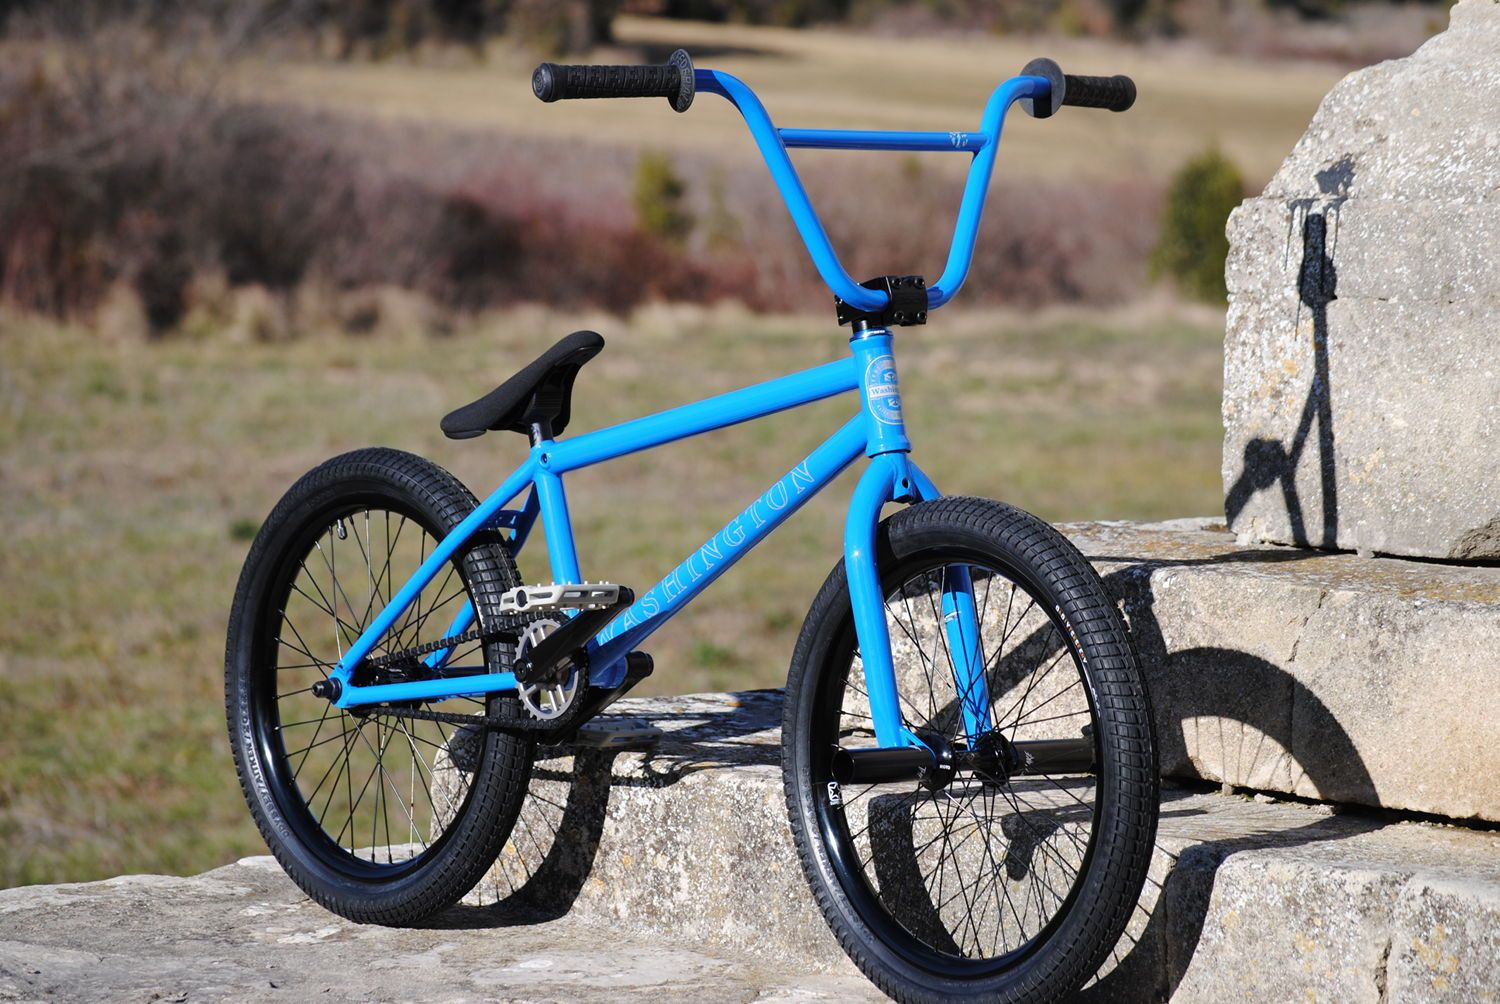 bmx | BMX FEDERAL WASHINGTON Classique Blue | BMX | Pinterest | BMX